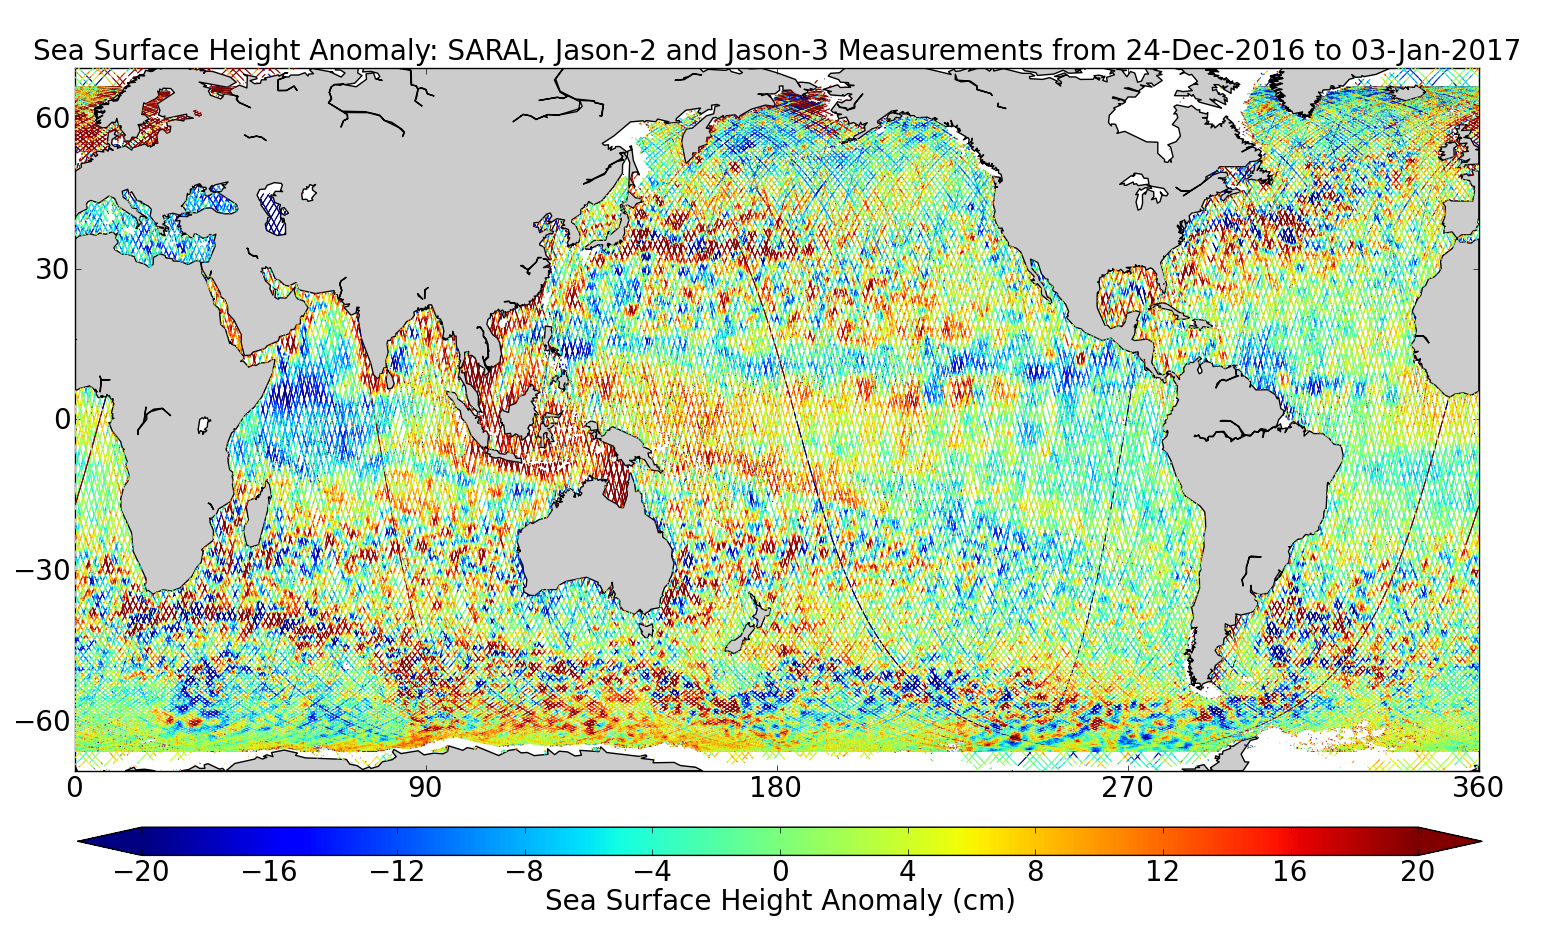 Sea Surface Height Anomaly: SARAL, Jason-2 and Jason-3 Measurements from 24-Dec-2016 to 03-Jan-2017